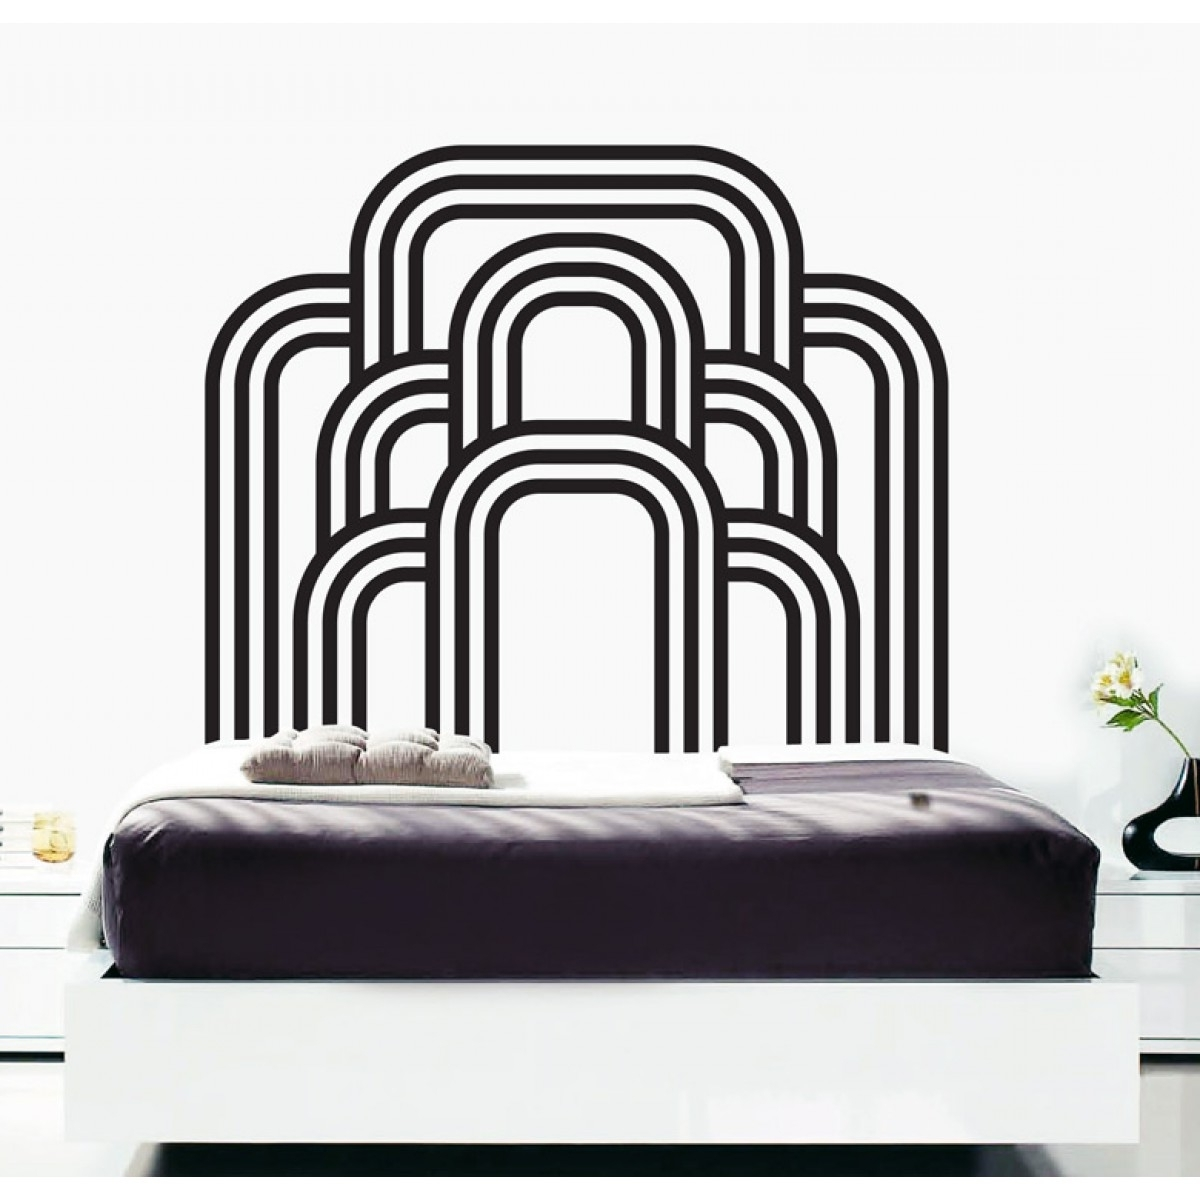 Bedroom Art Deco Wall Stickers With Art Deco Wall Art (View 9 of 20)